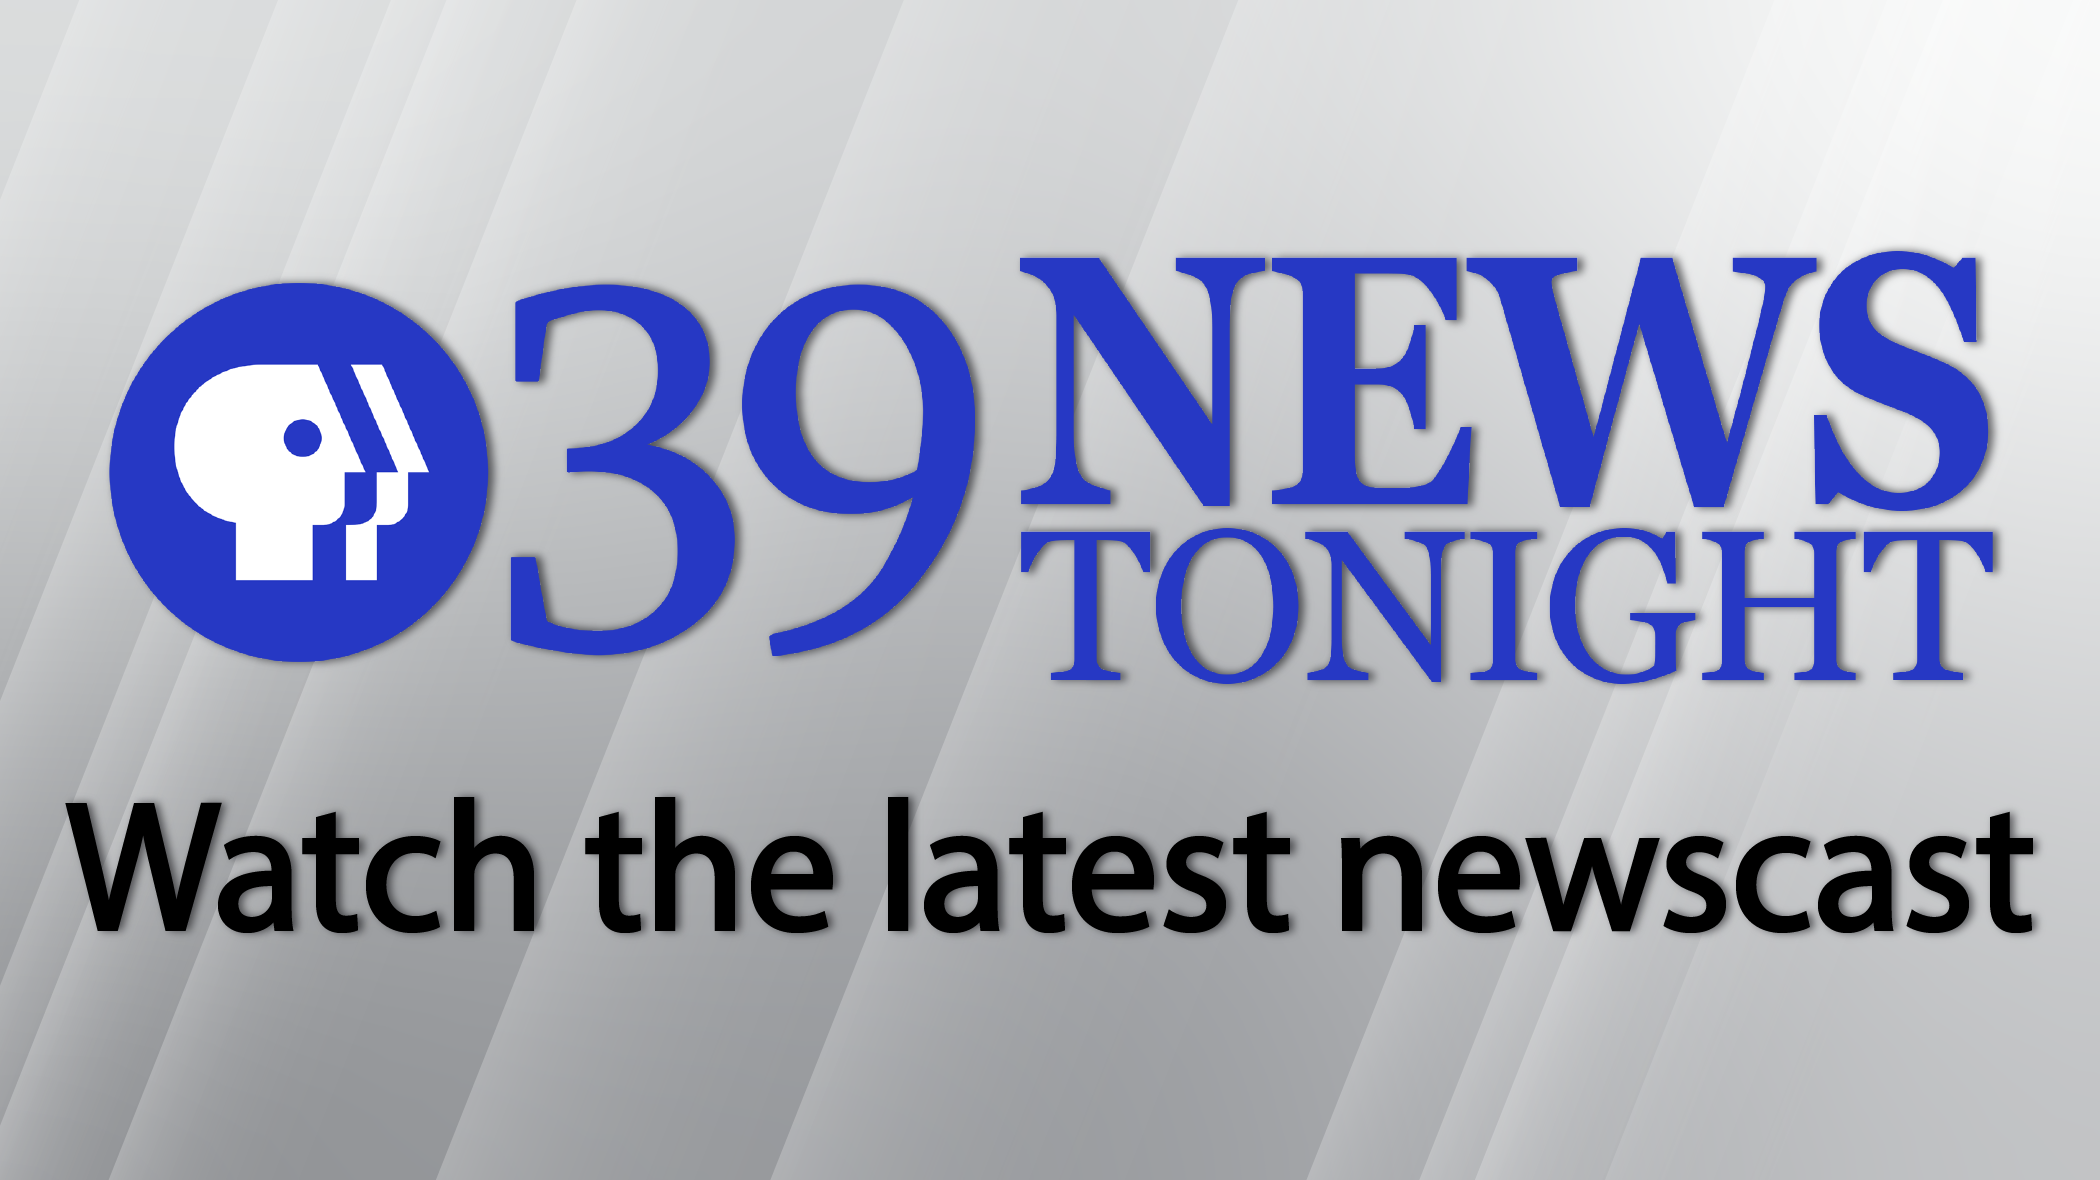 Watch the latest newscast